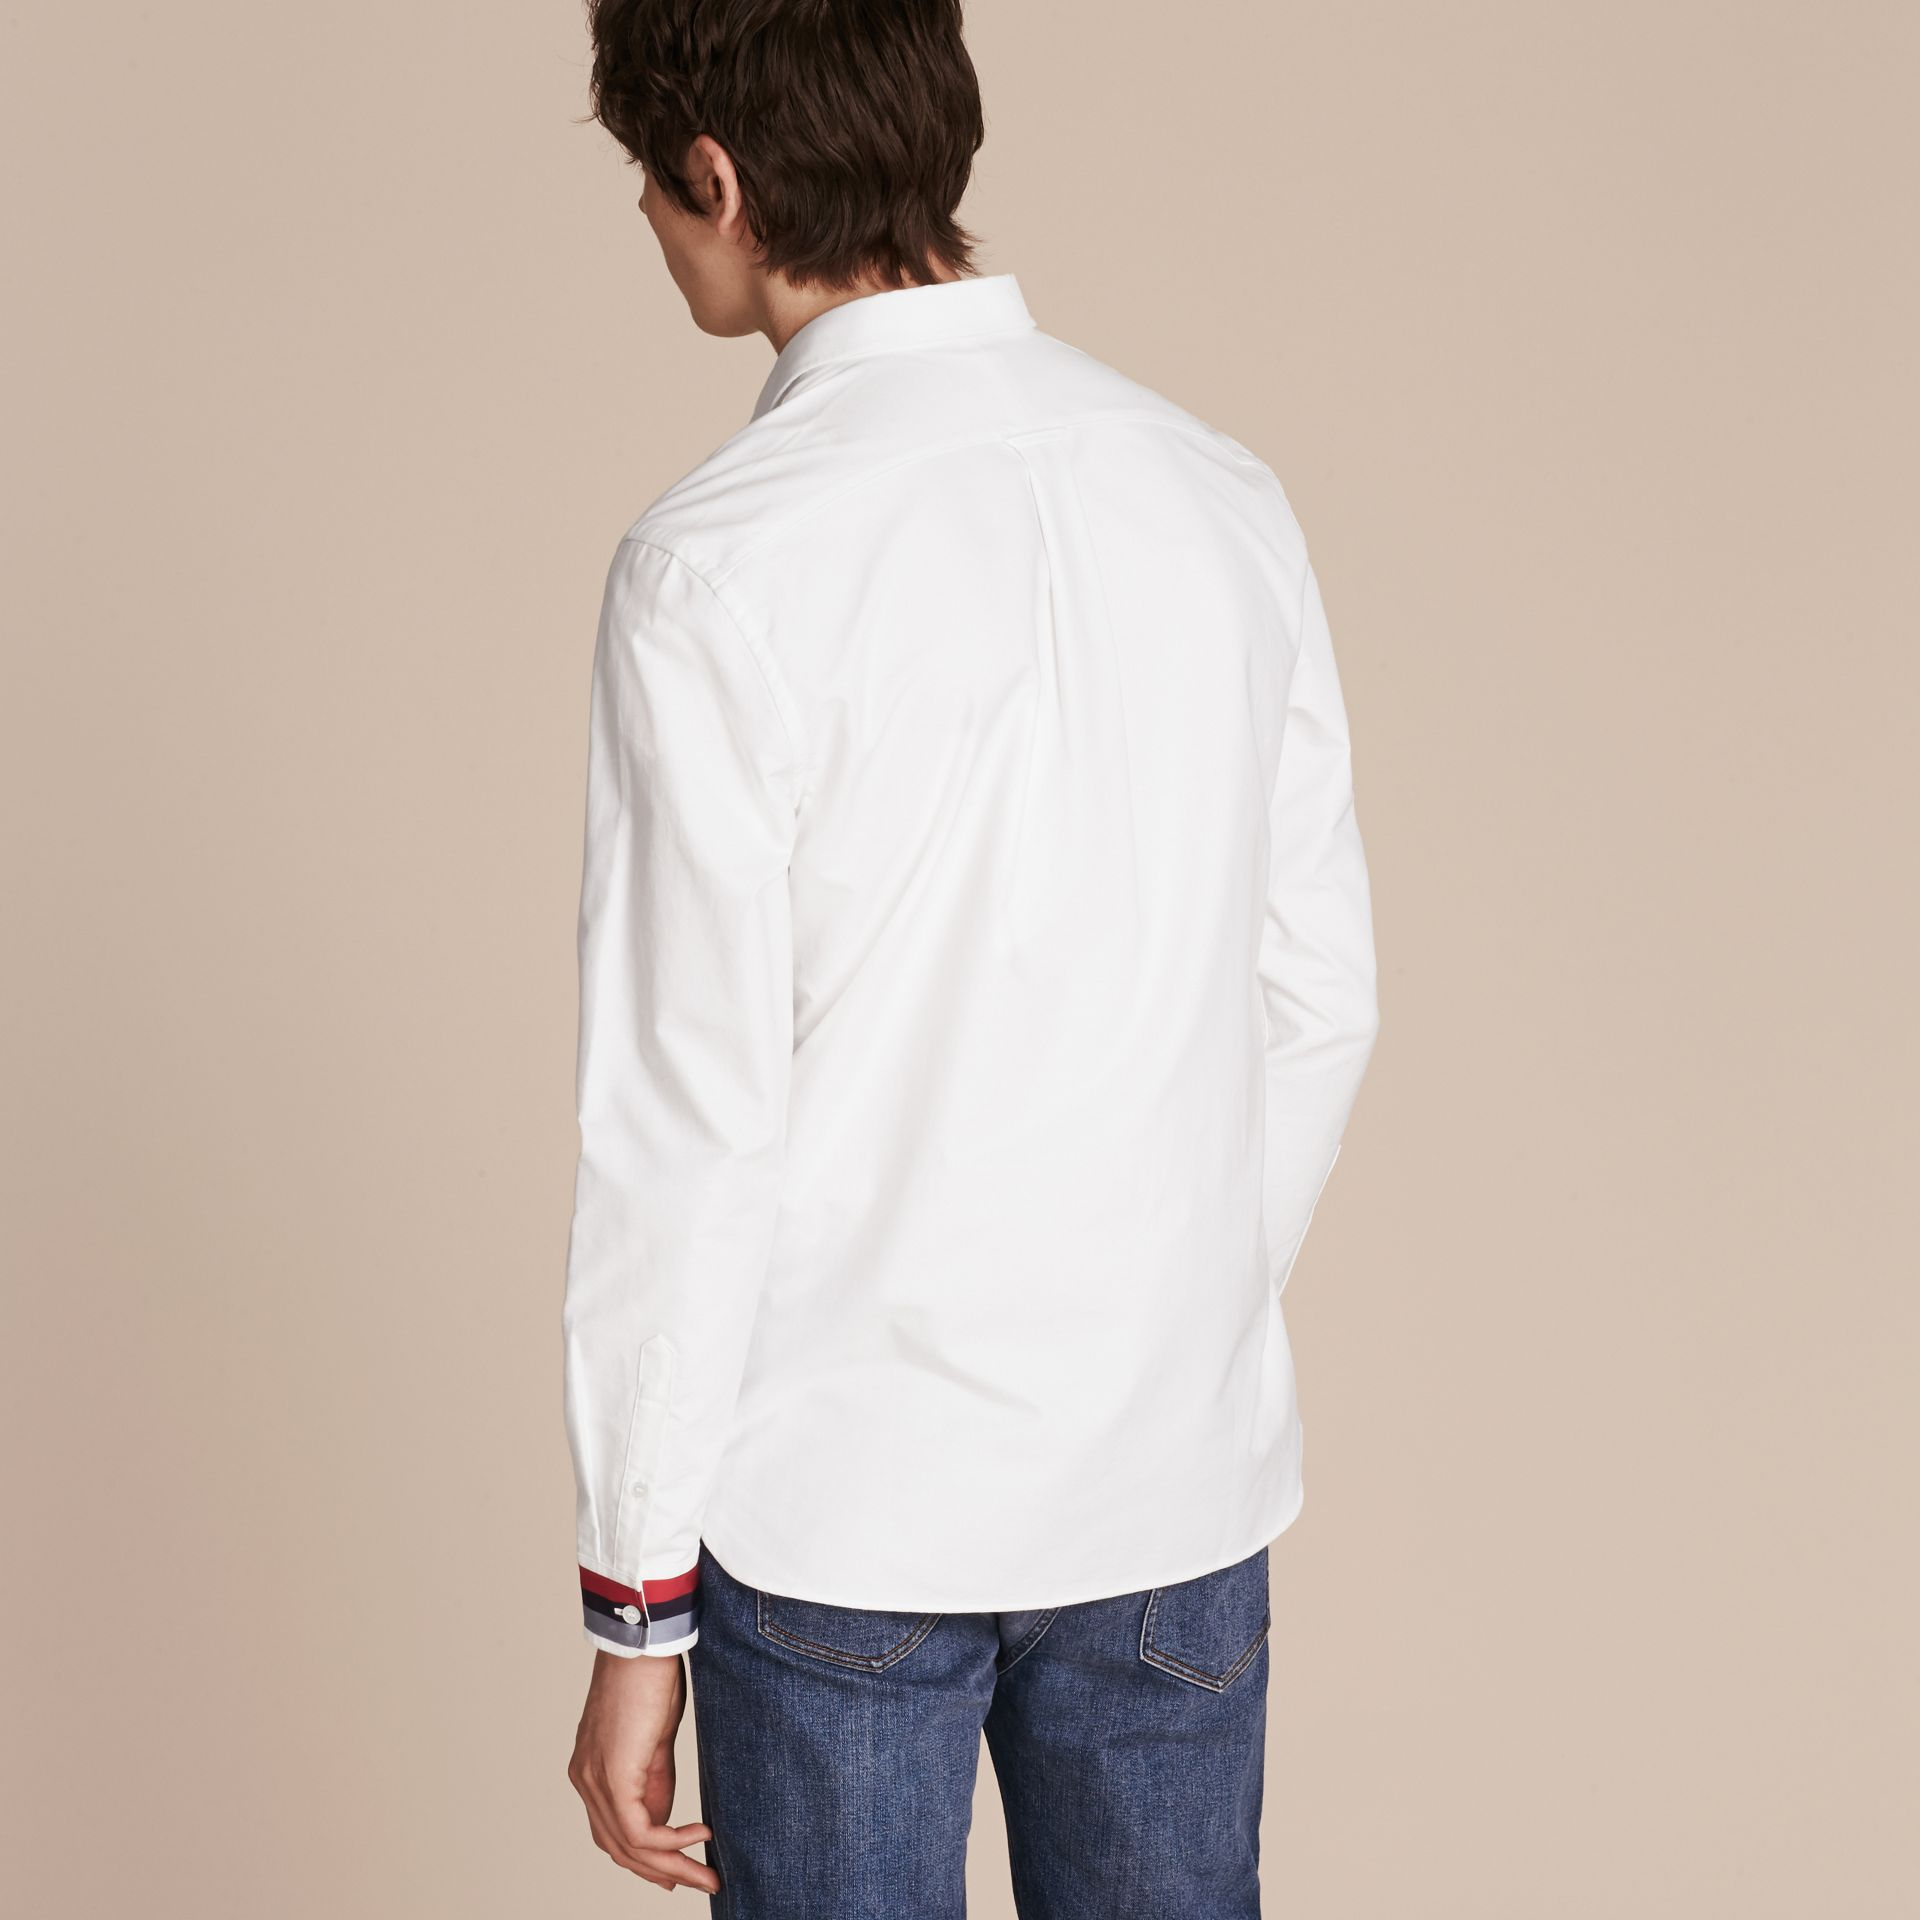 White Oxford Cotton Shirt with Regimental Cuff Detail White - gallery image 3